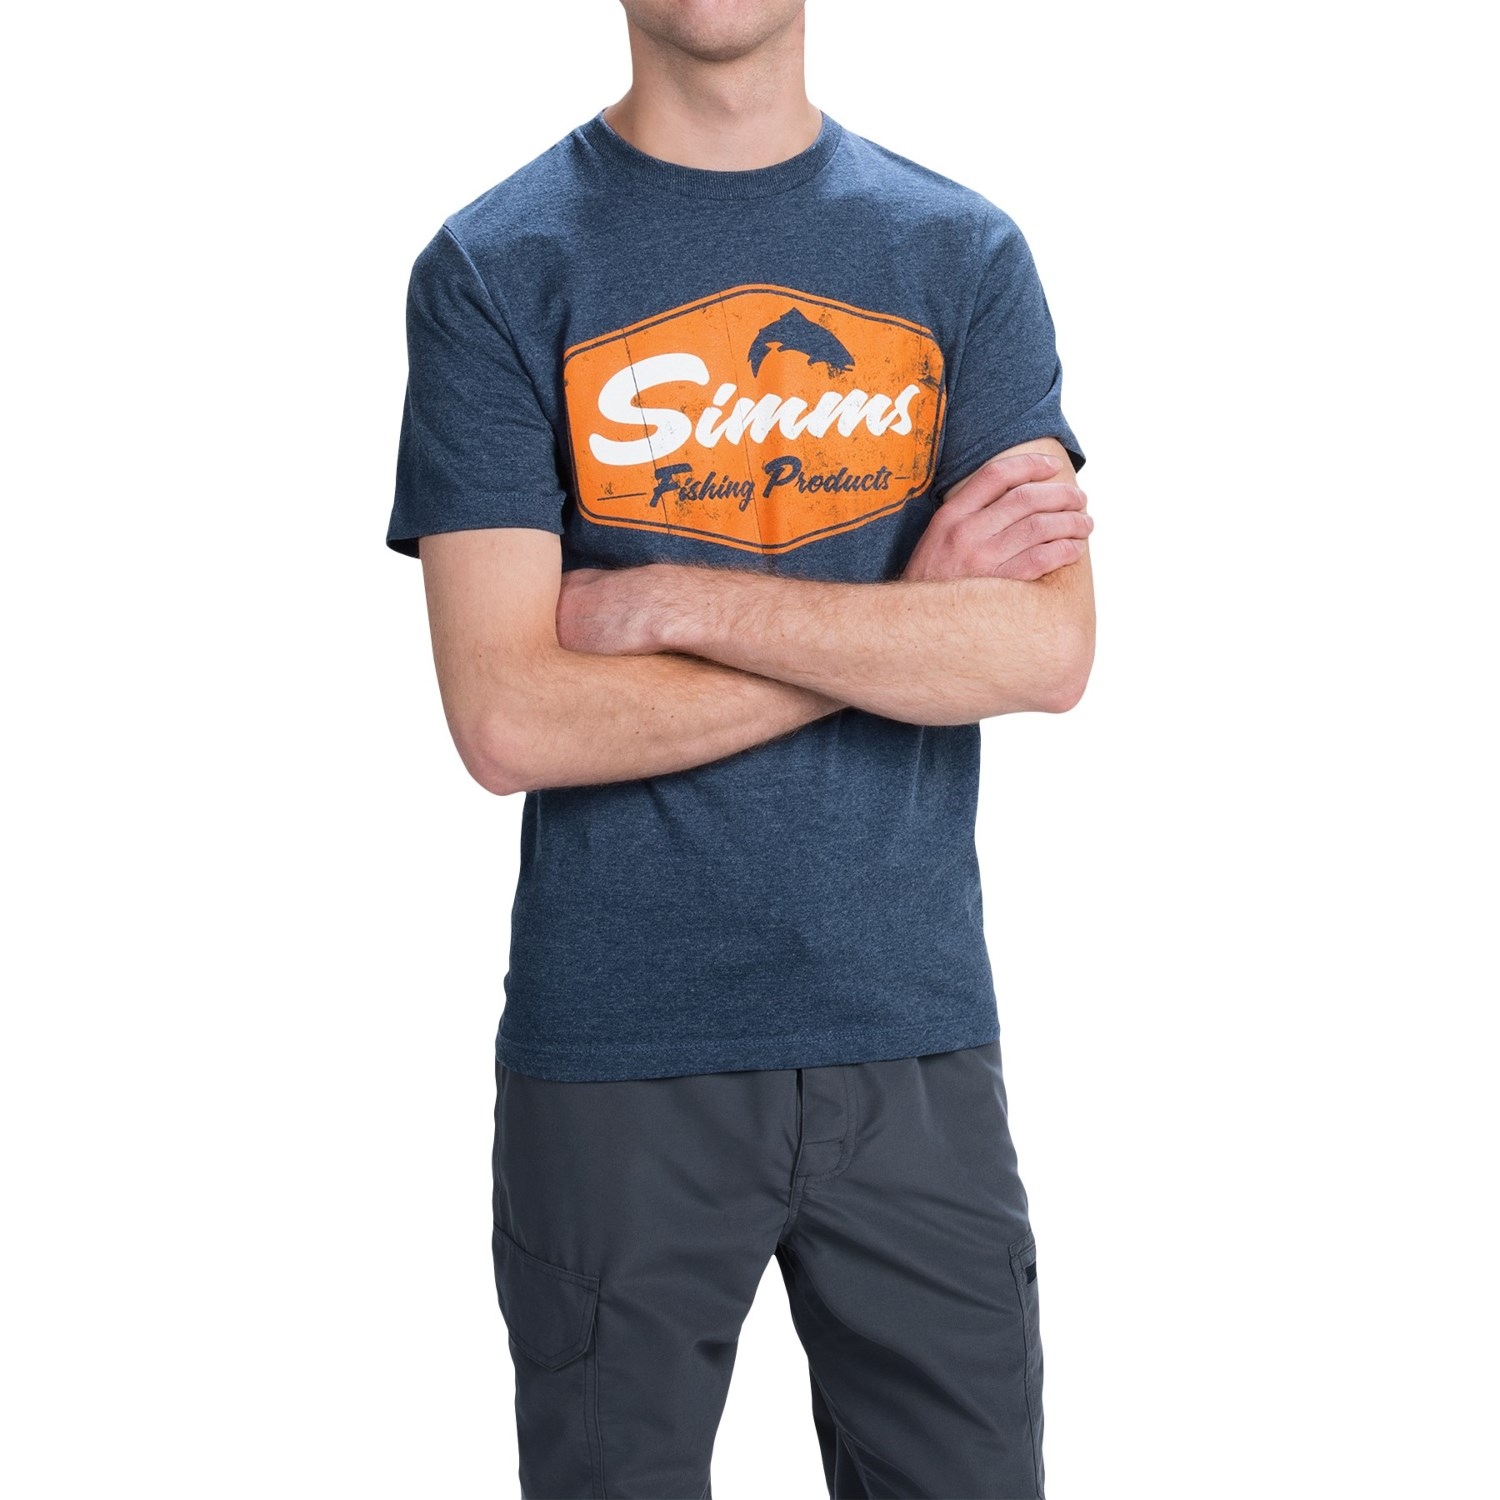 Simms fishing products graphic t shirt for men save 48 for Simms fishing products